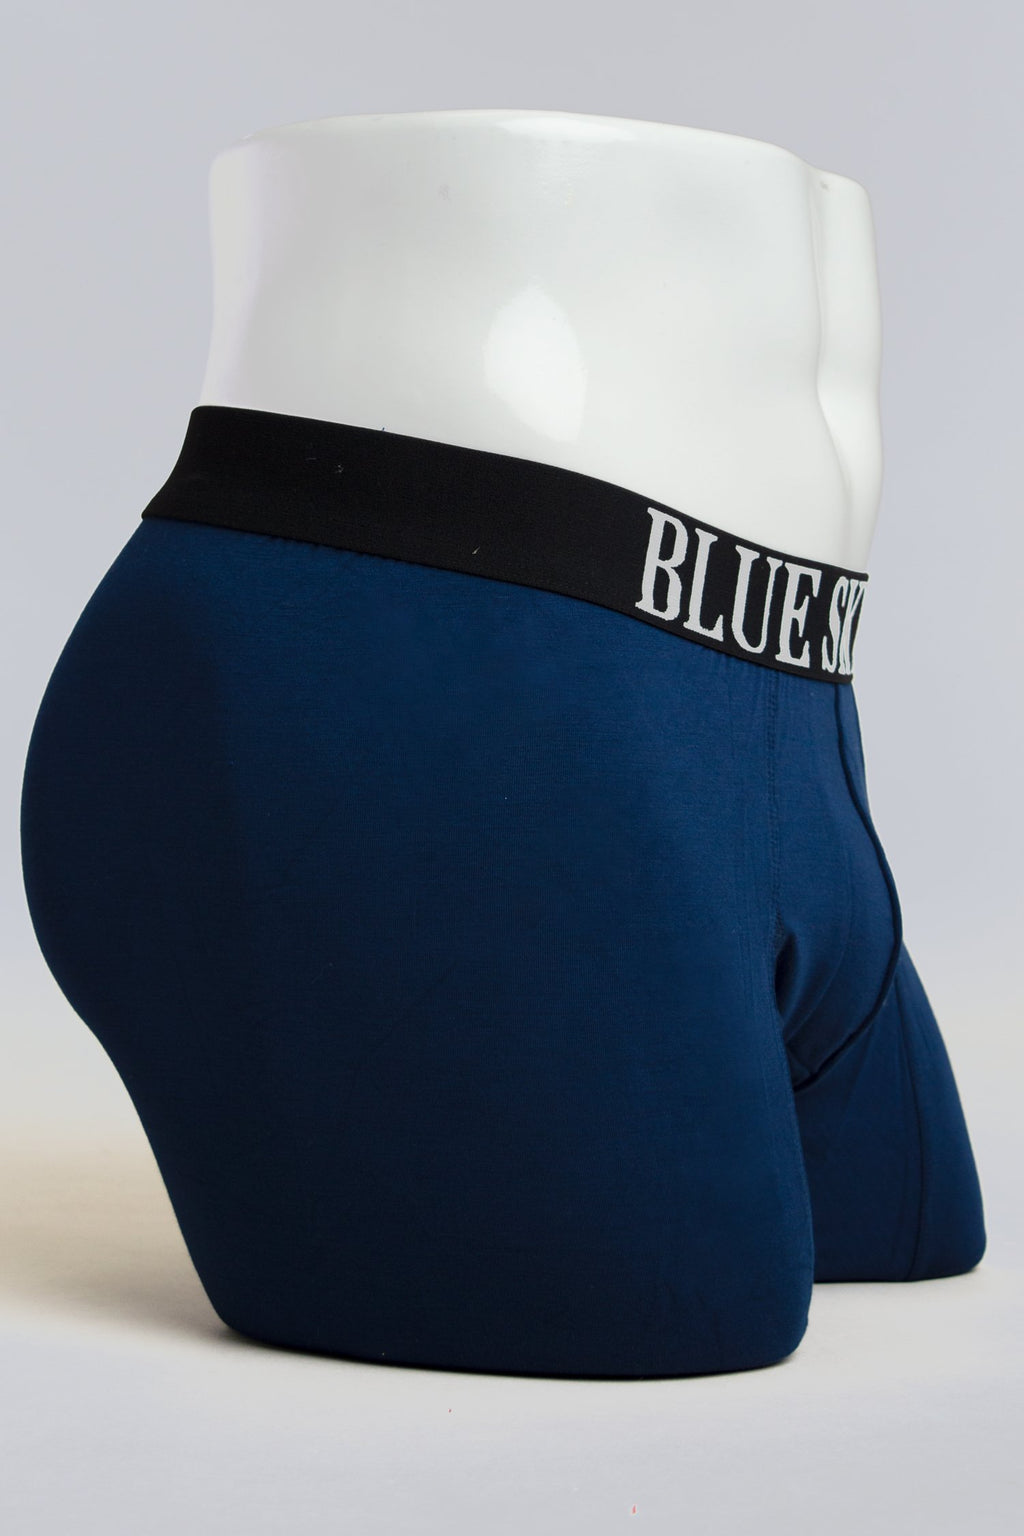 Boxer 2.0, Indigo - Blue Sky Clothing Co